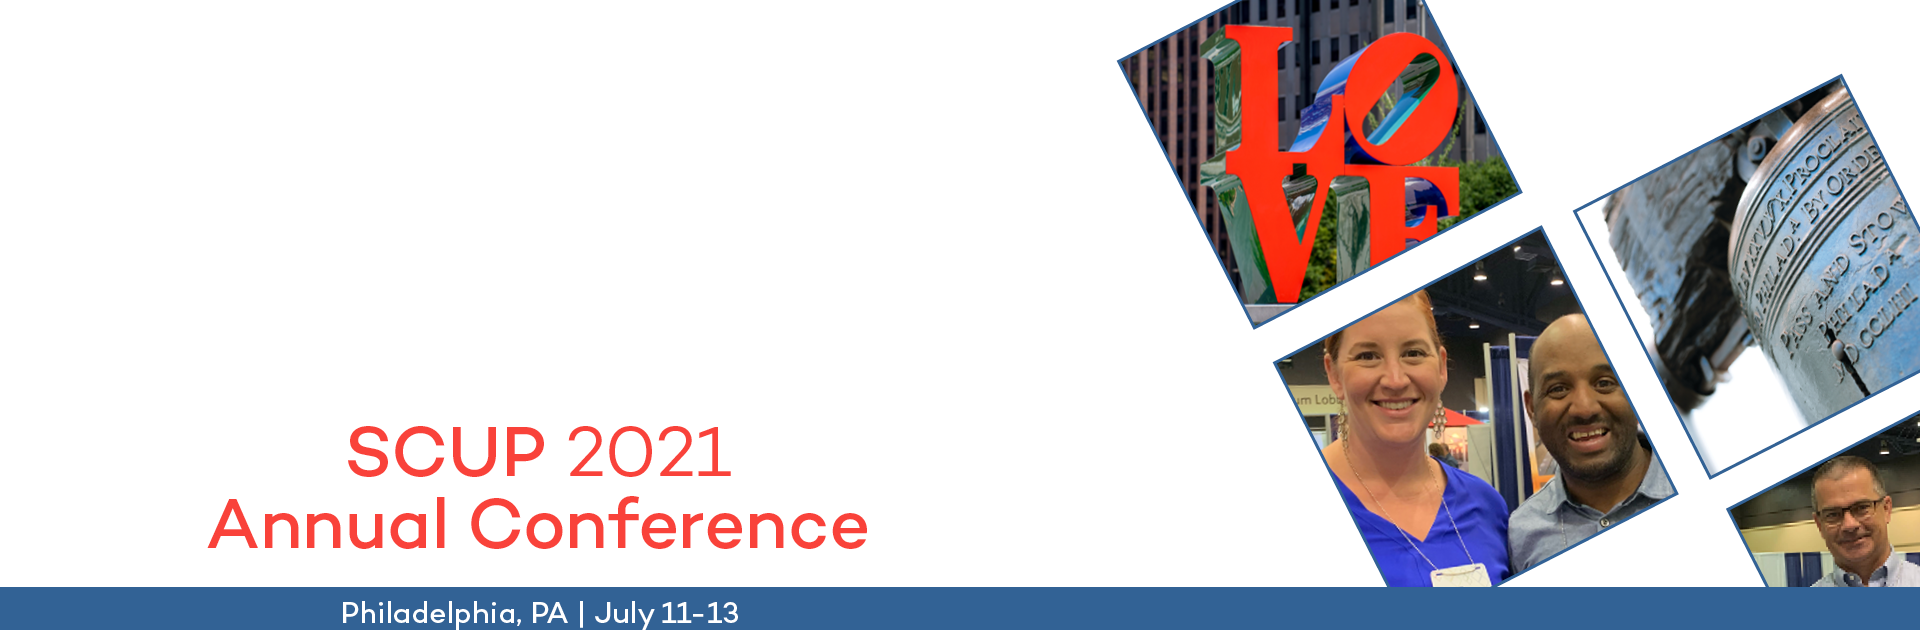 SCUP 2021 Annual Conference - July 11-13